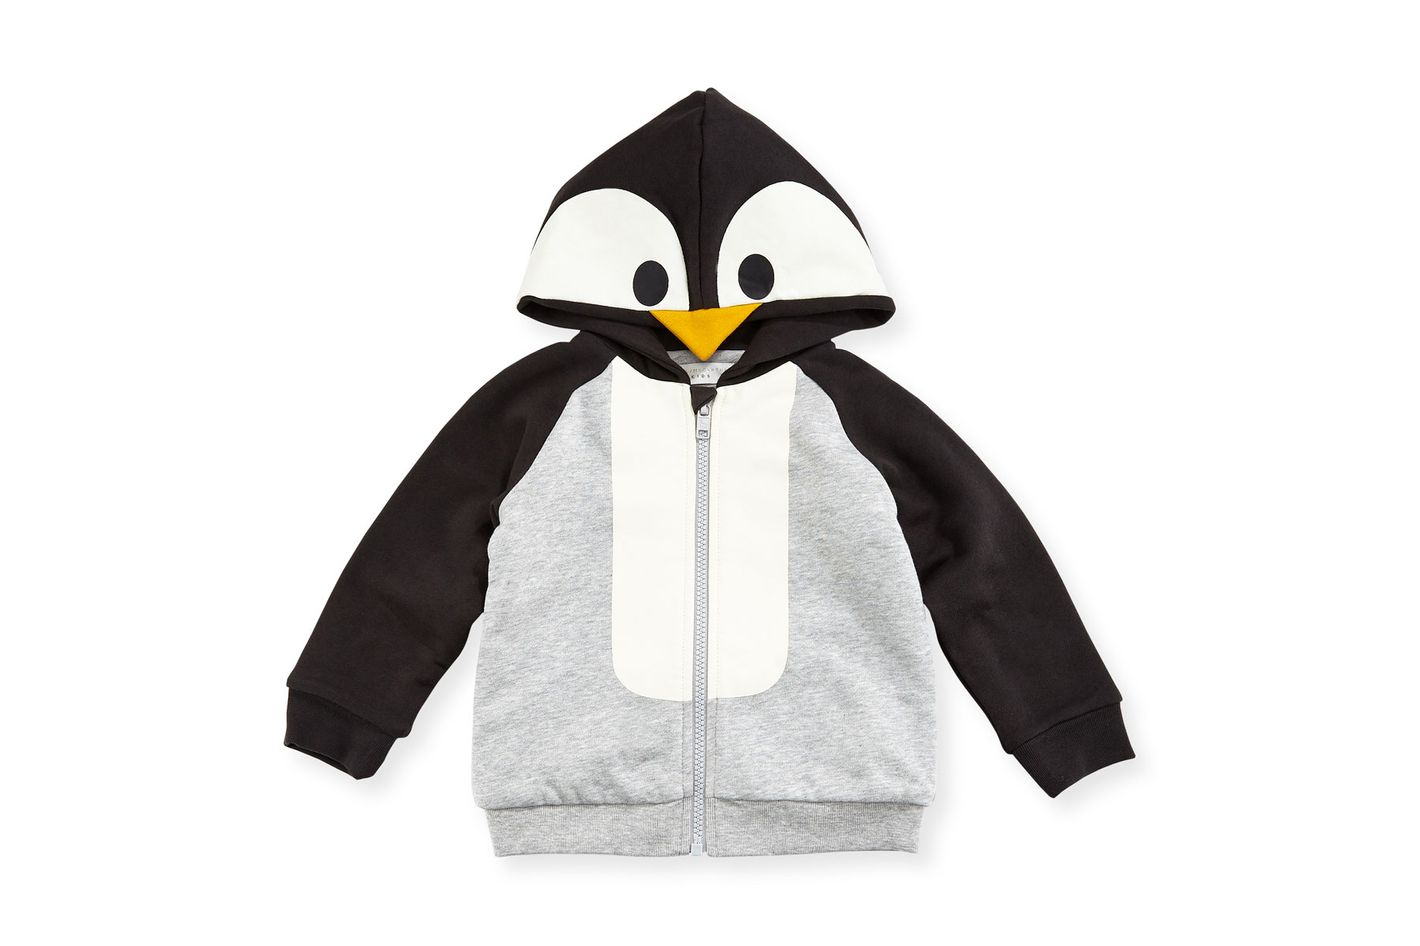 Stella McCartney Buddy Penguin Hoodie Sweatshirt